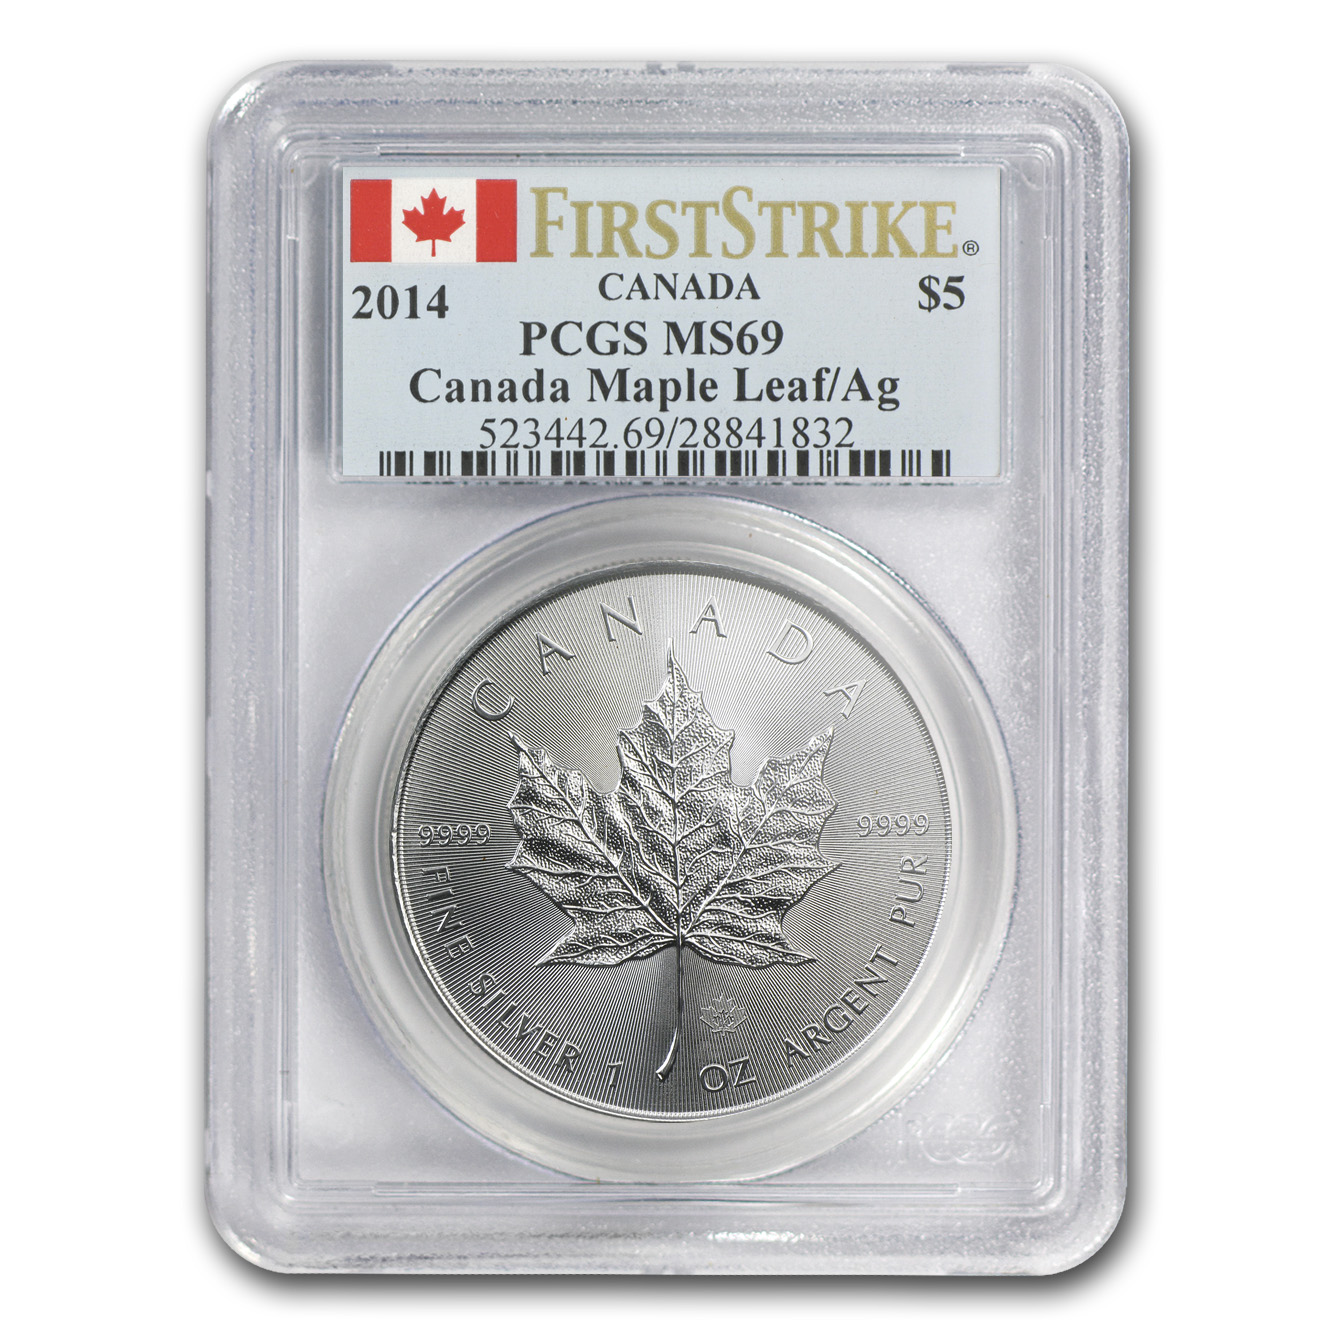 2014 1 oz Silver Canadian Maple Leaf MS-69 PCGS First Strike